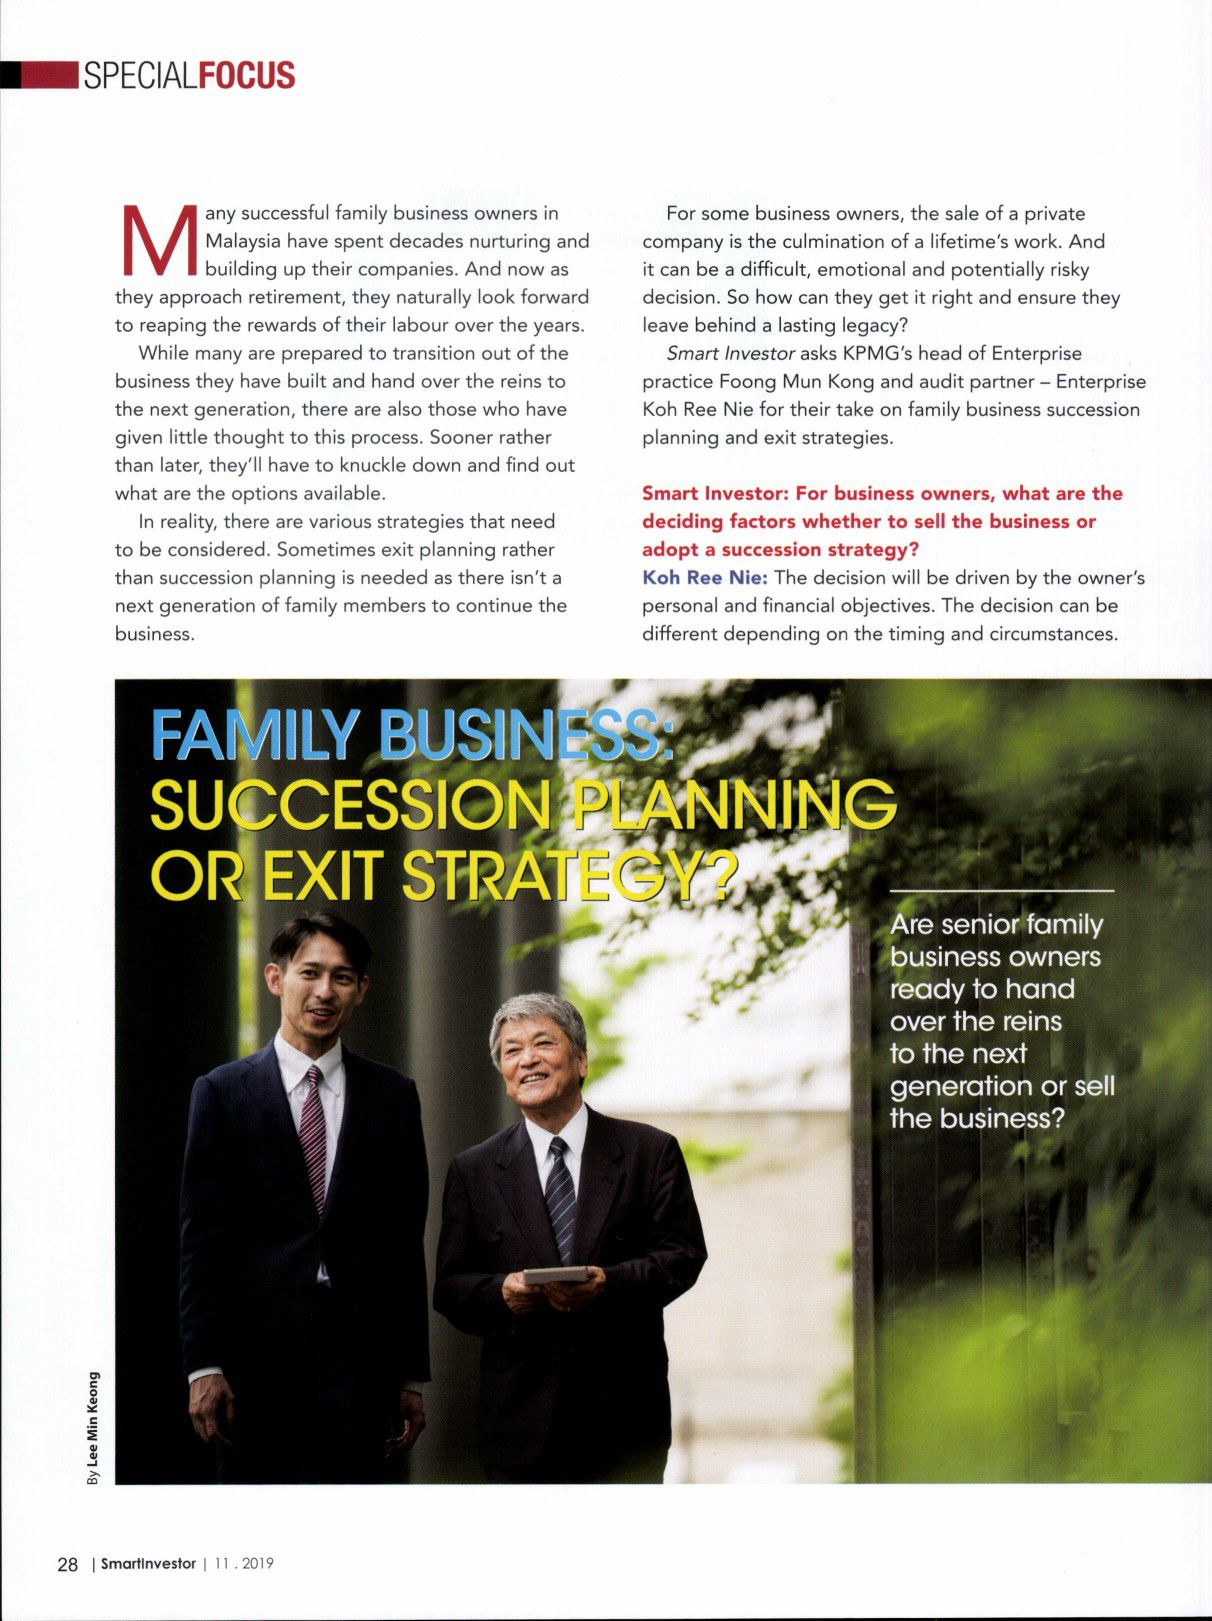 Family Business Succession Planning or Exit Strategy